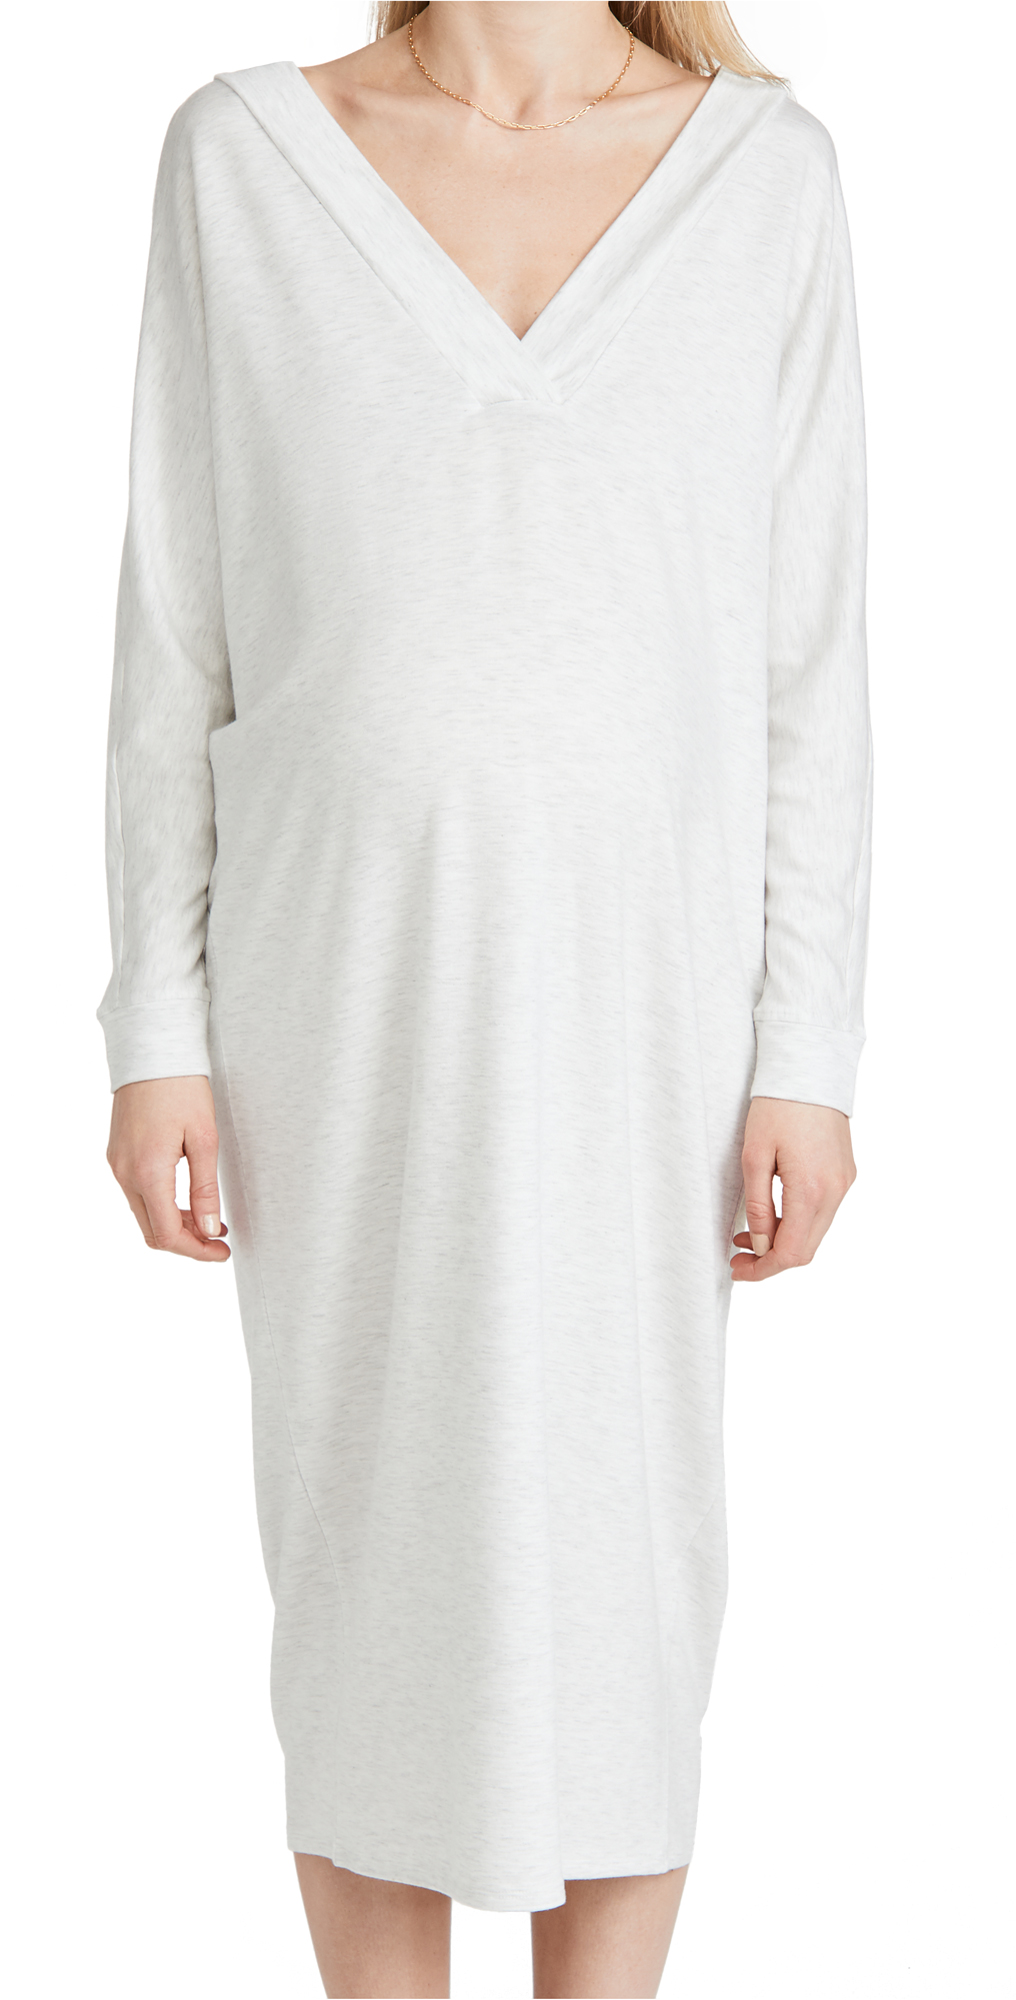 The Visitor Dress